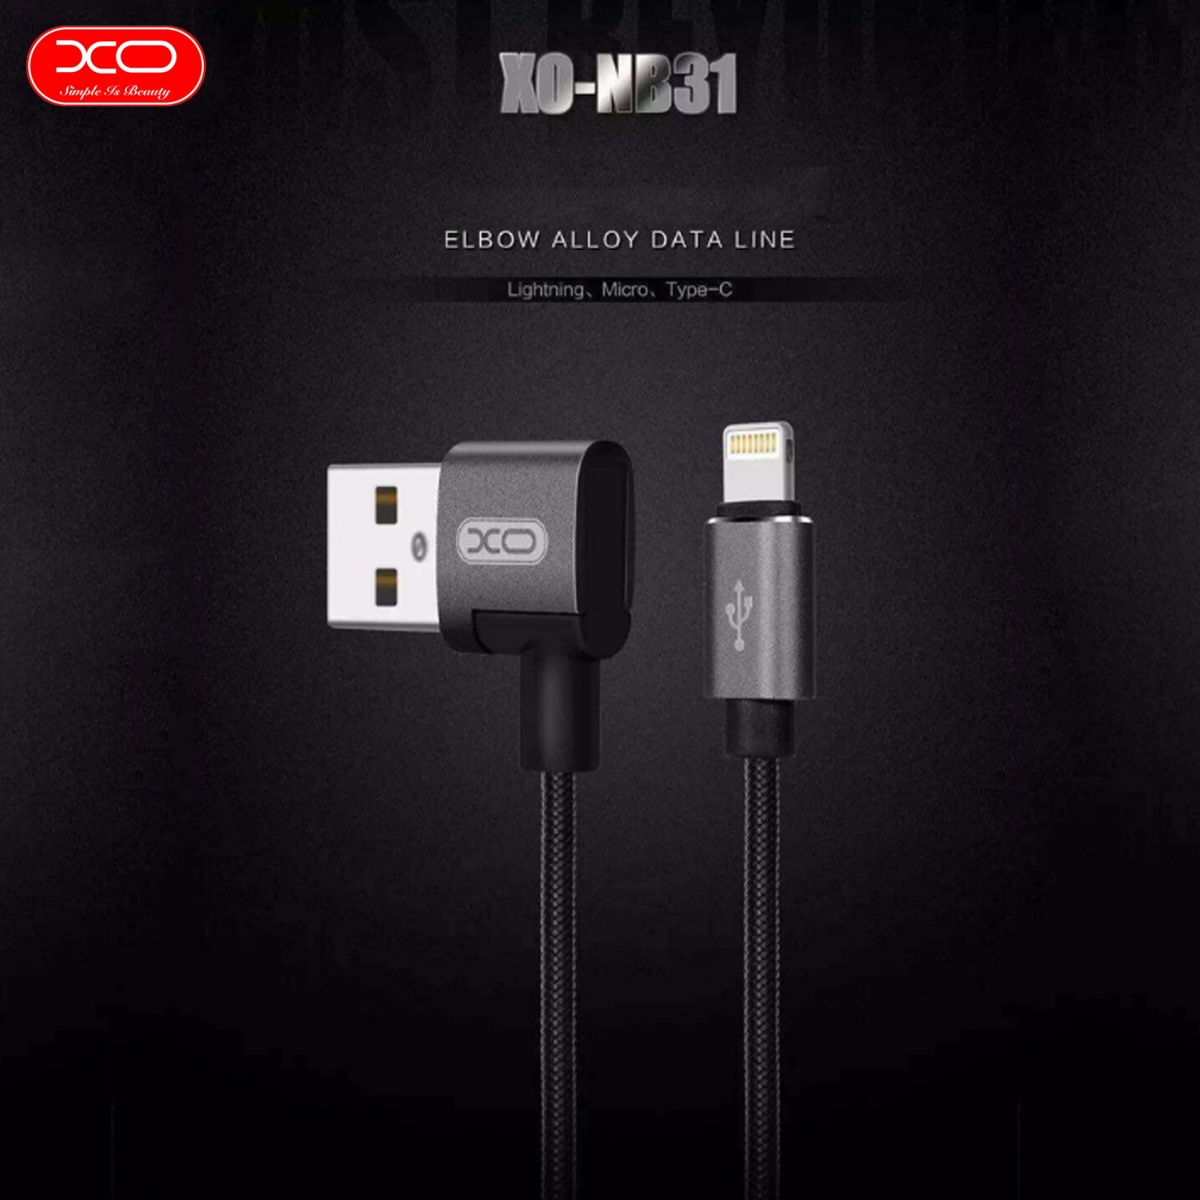 XO NB31 Lightning USB Elbow Alloy 2.4A Cable - Black